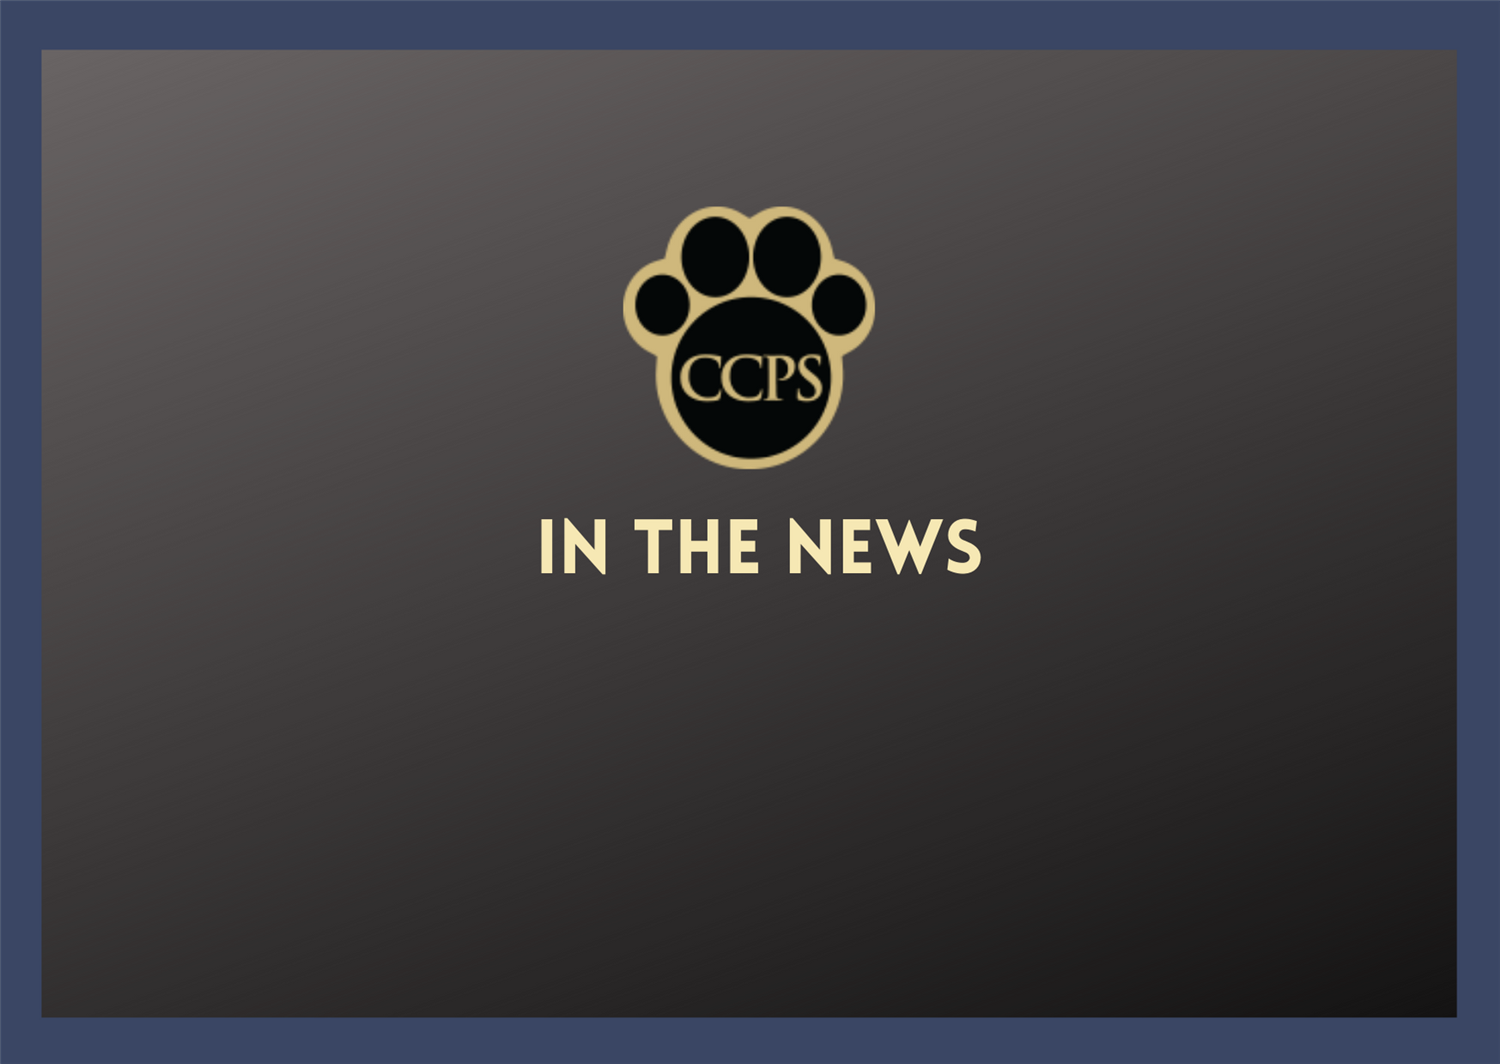 ccps logo and title in the news